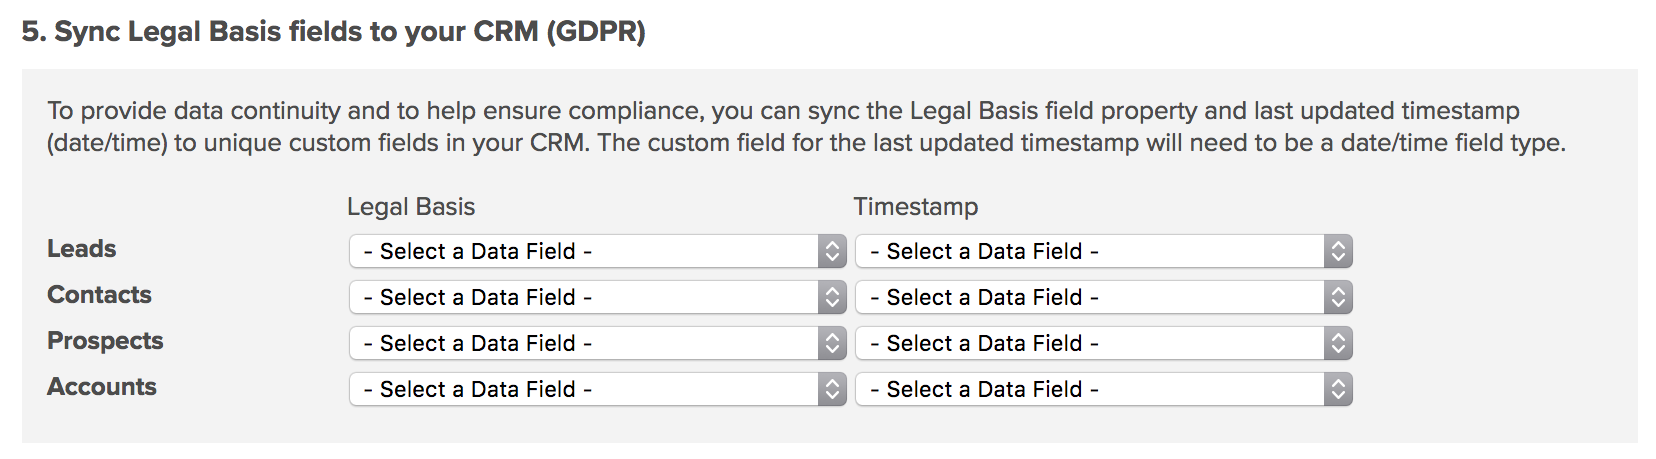 inbox25-sync-lawful-basis-with-crm.png